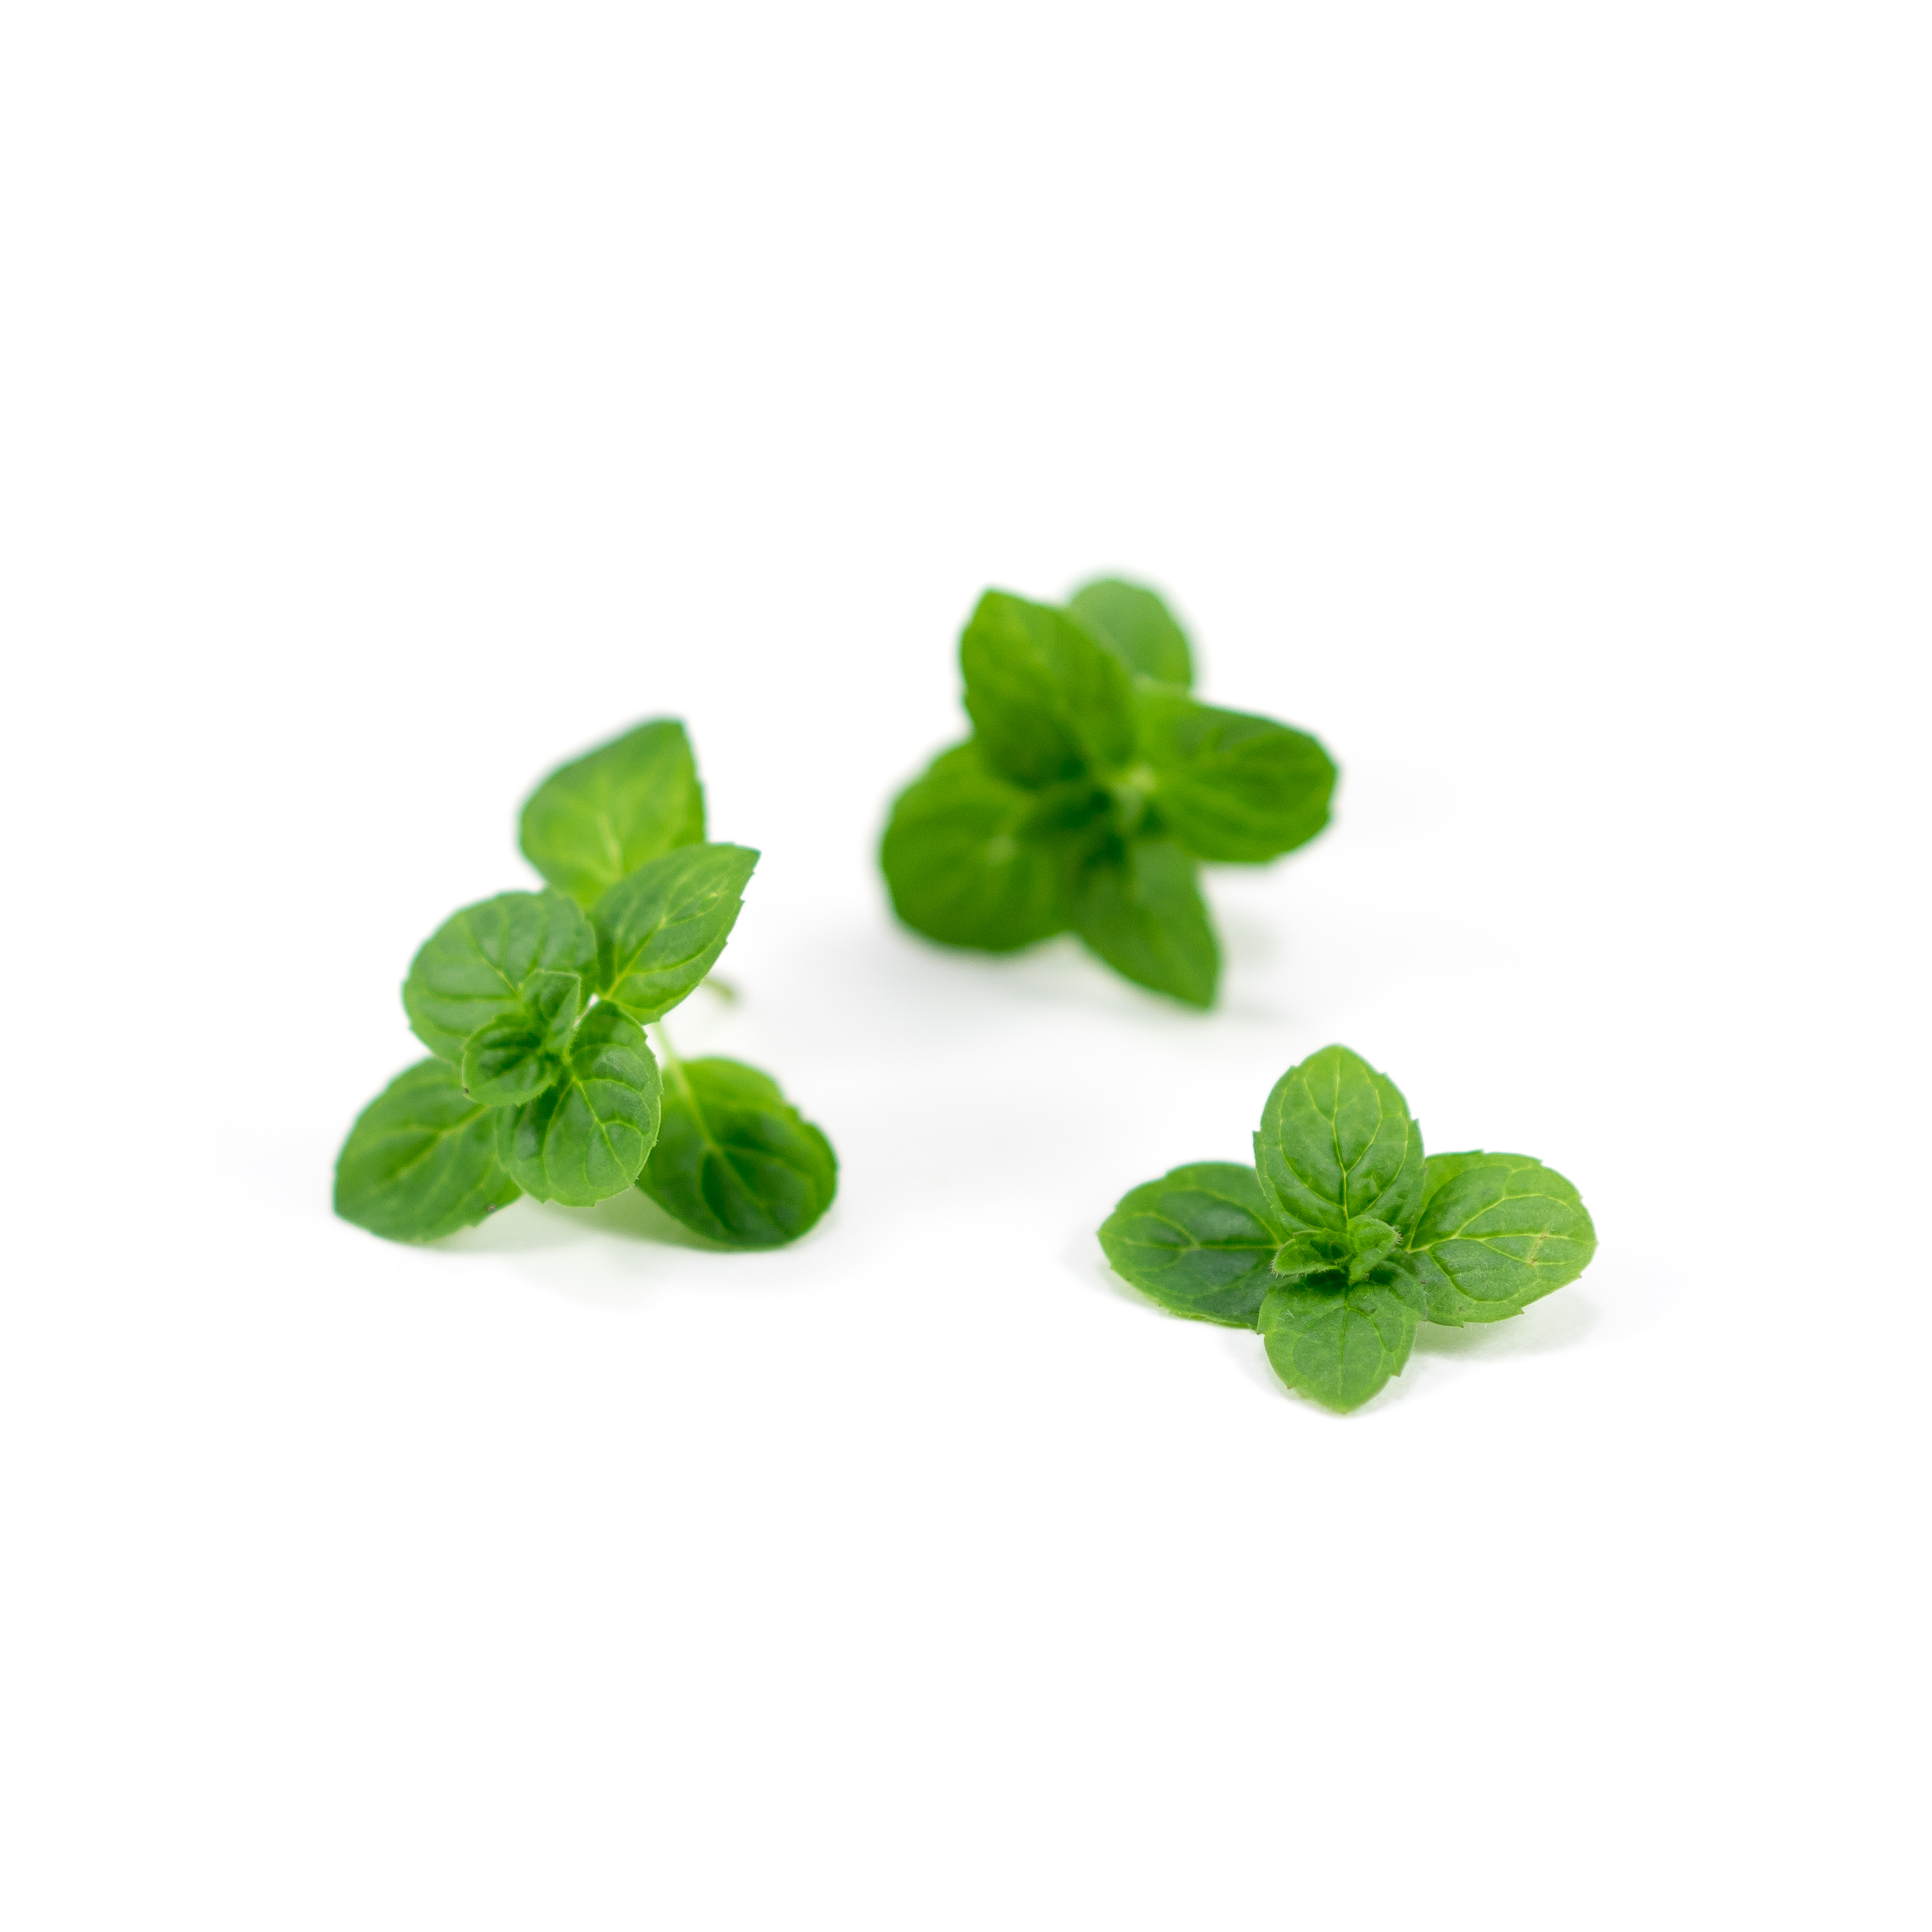 Sweeter, lemon-scented mint with green leaves